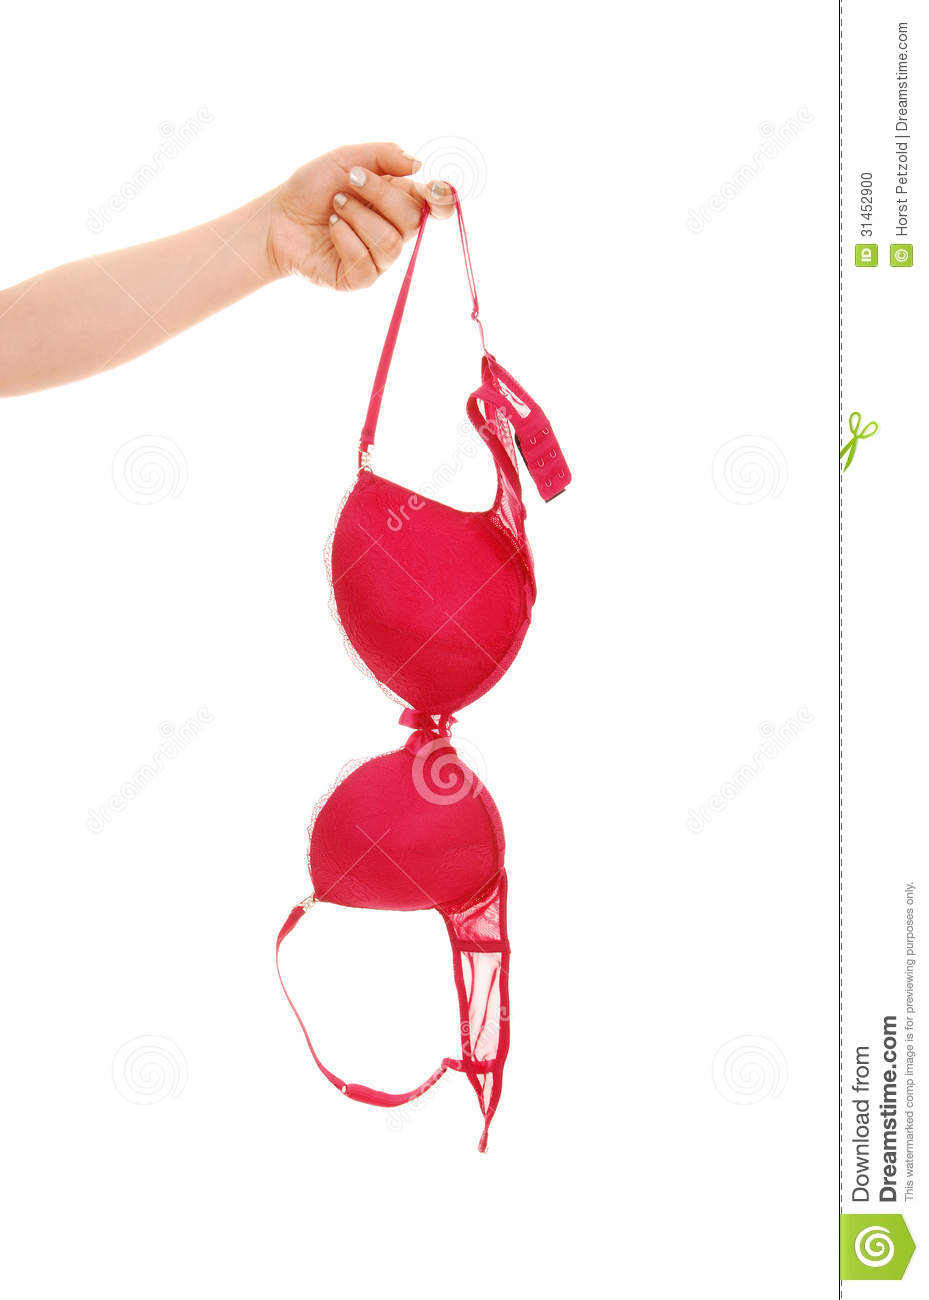 woman's hand holding a red bra for white background.